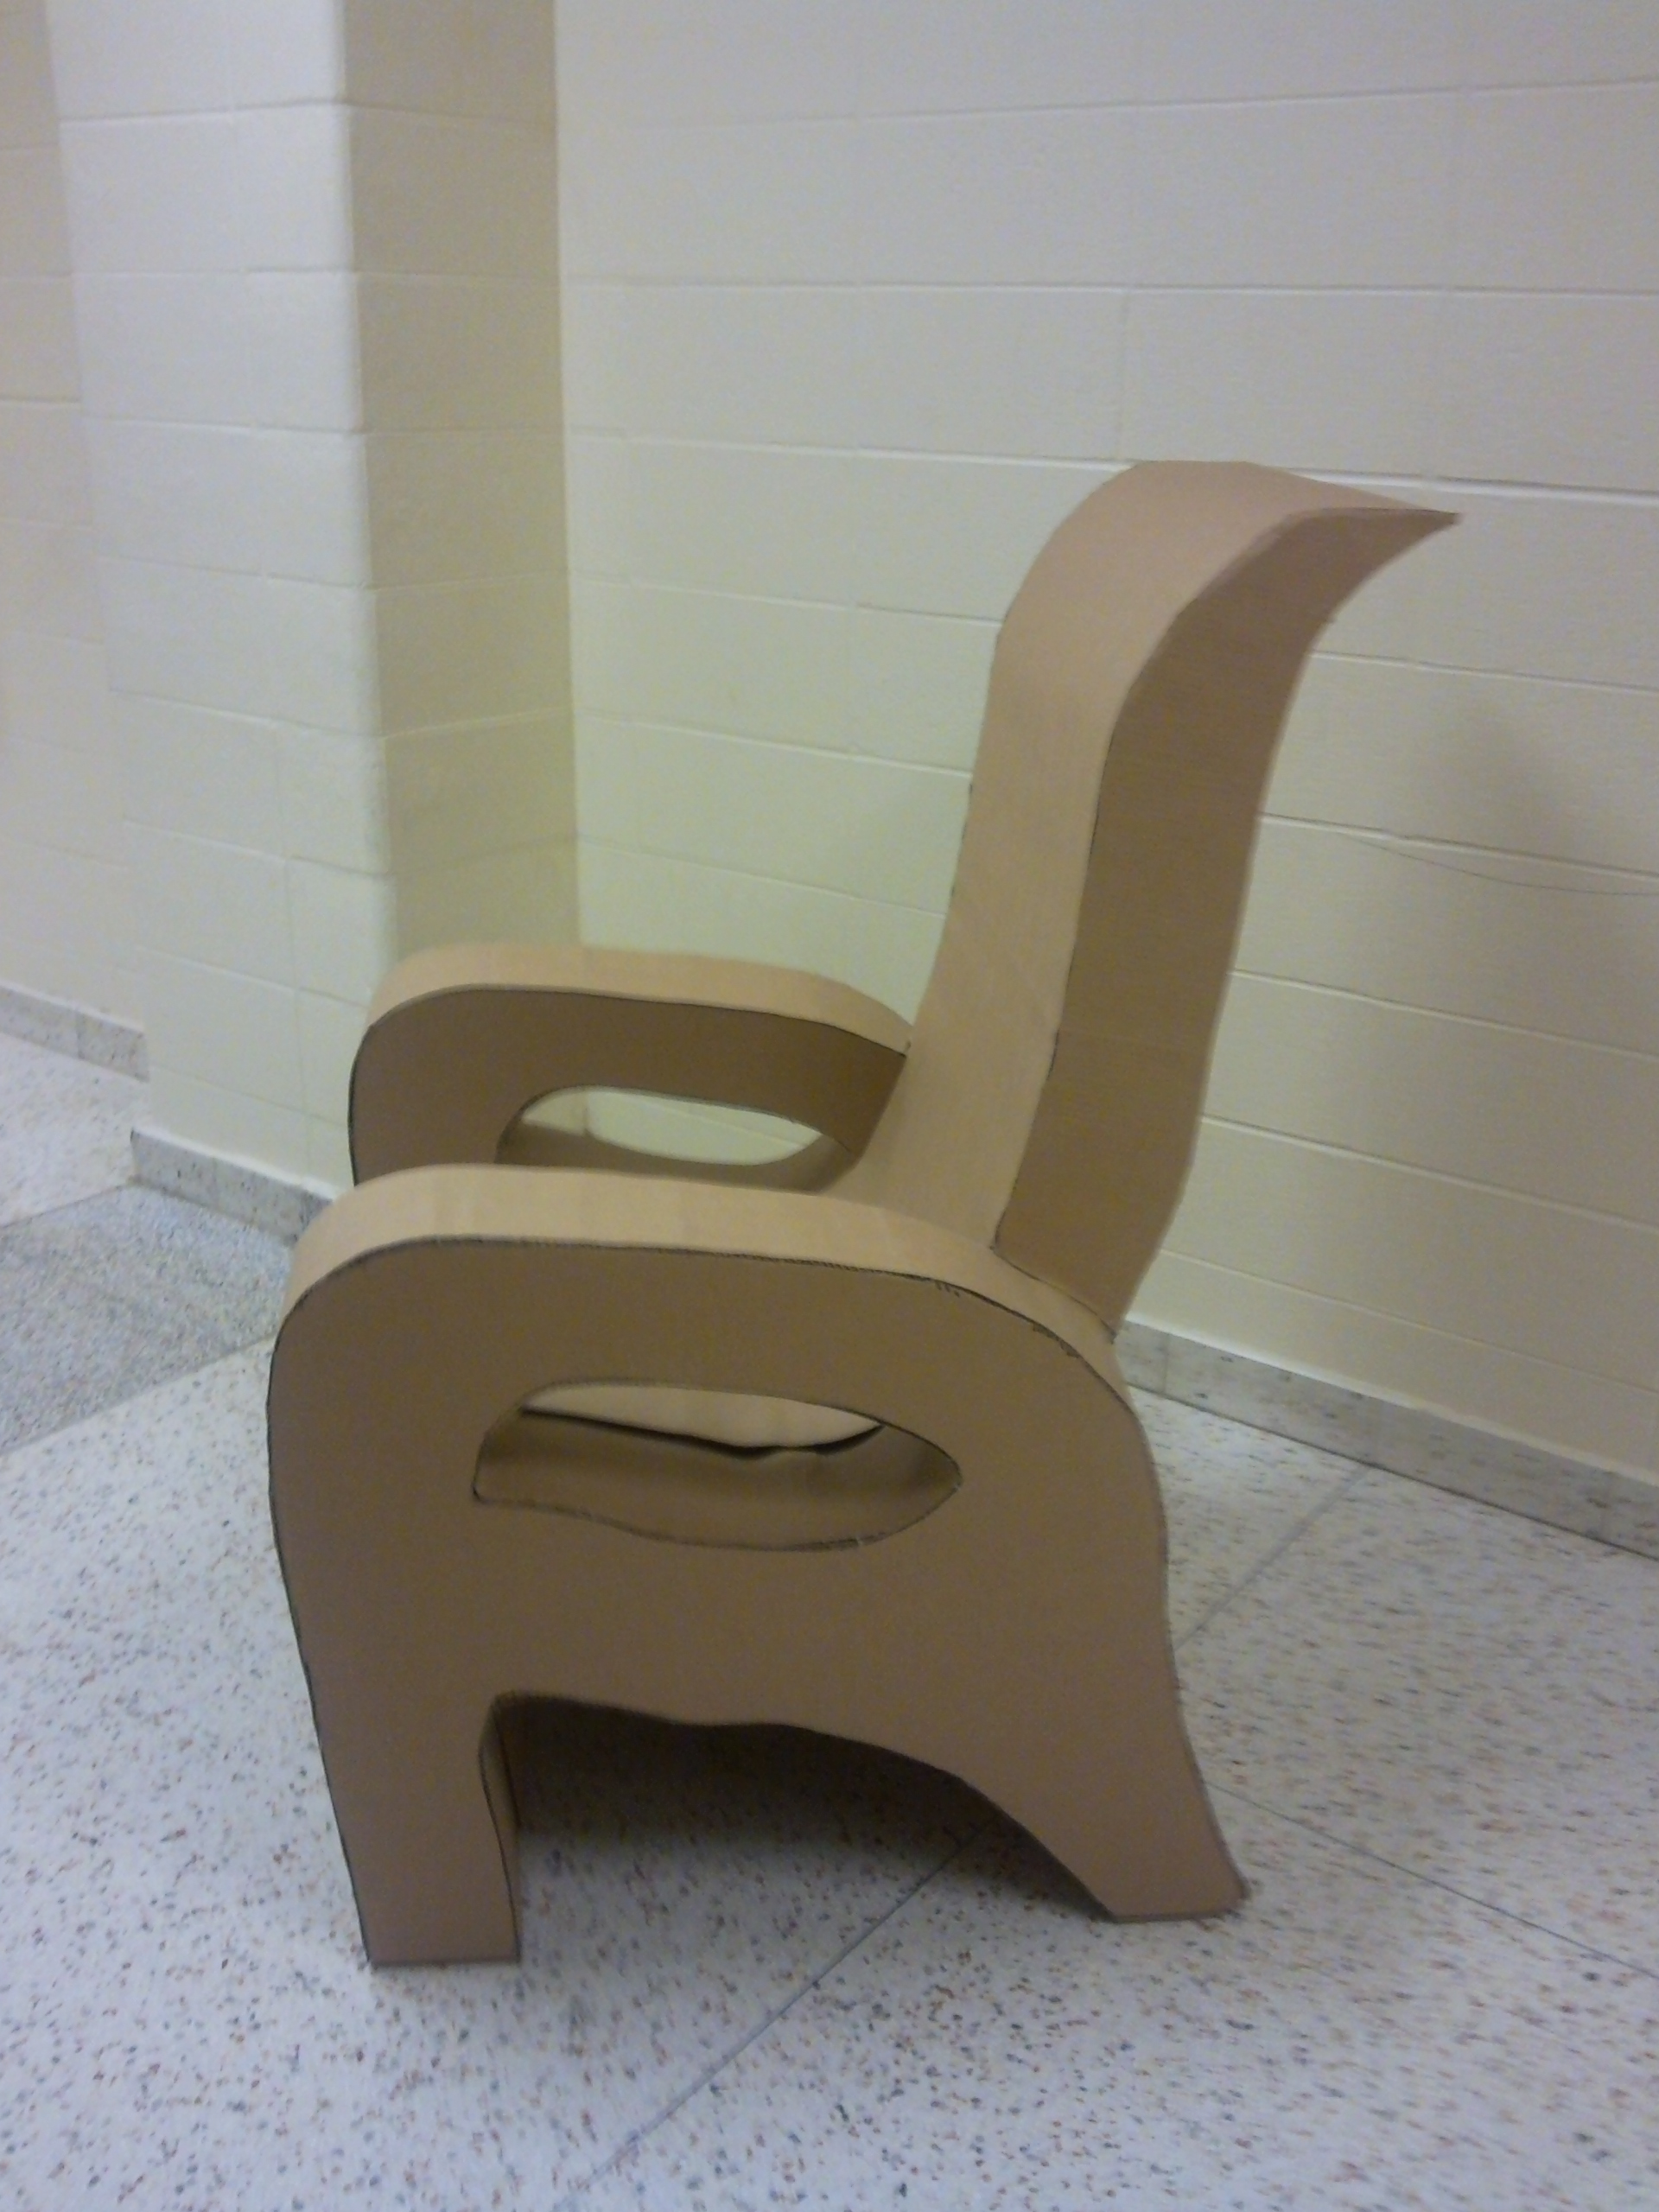 chair design model folding chairs and table cardboard chris choi